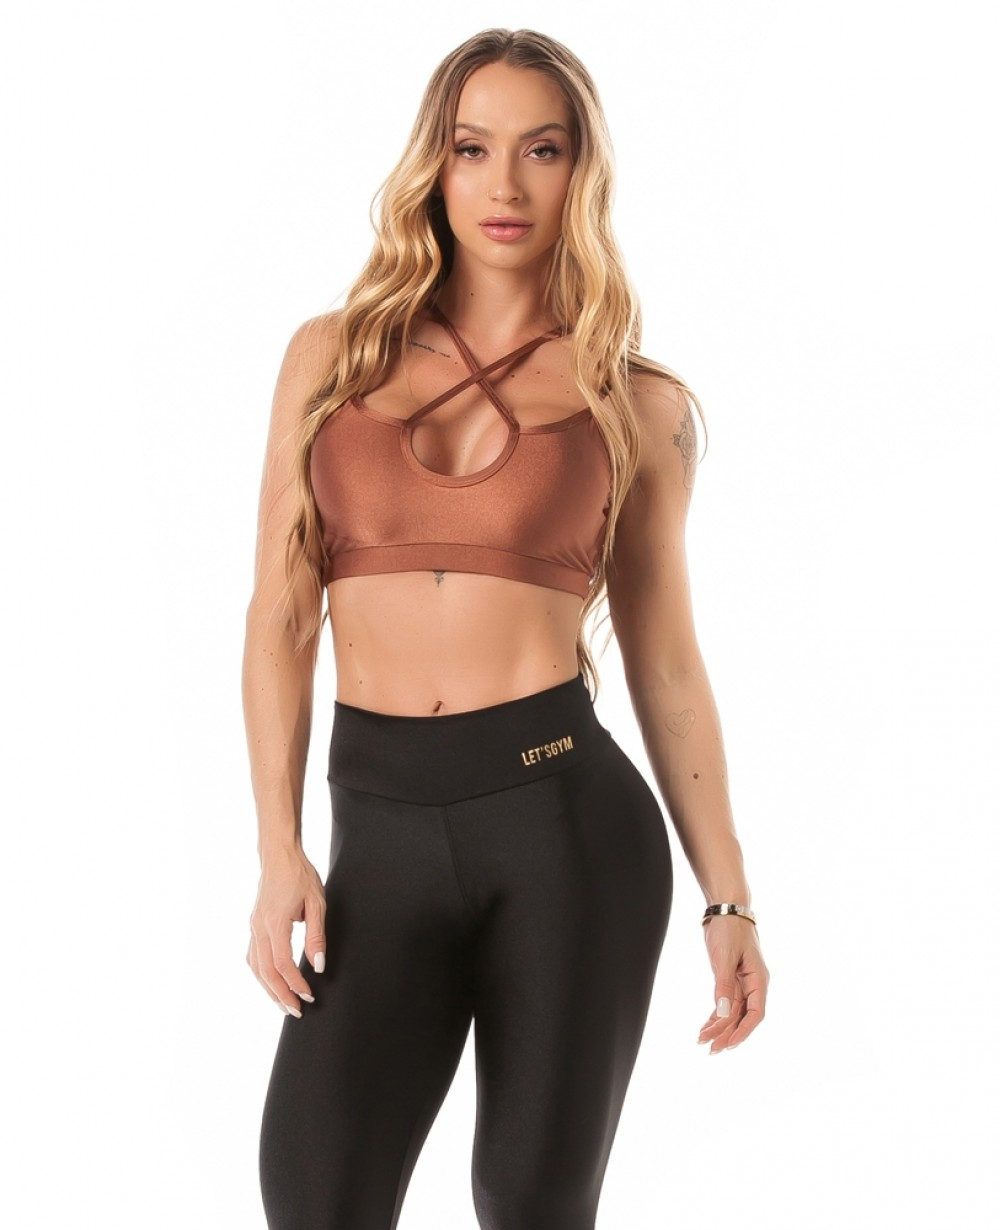 Top Let'sGym Glow Trilobal